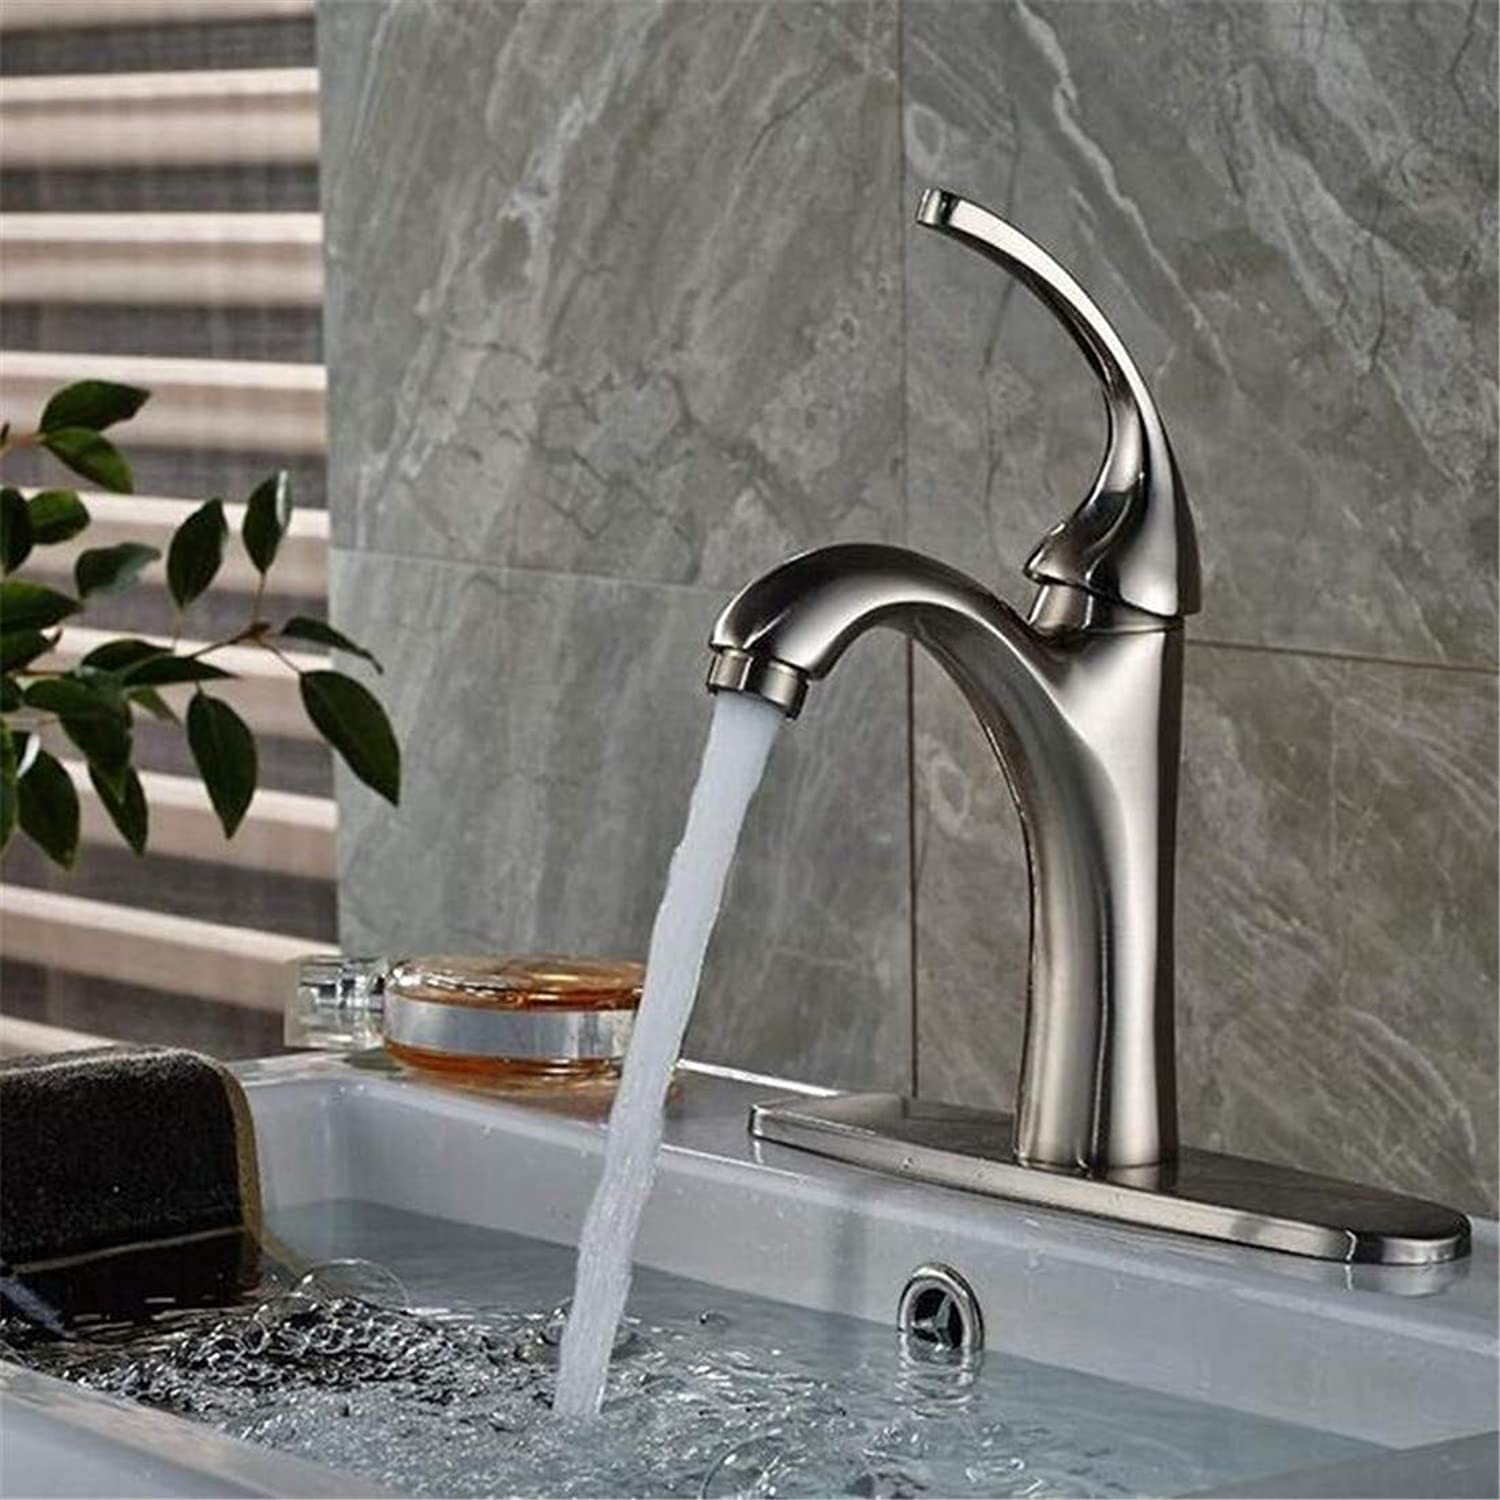 Faucet Kitchen Bathroom Stainless Steel Faucet Faucet Washbasin Mixer Bathroom Baisn Faucet Brass Sink Mixer Tap Plate Nickel Brushed